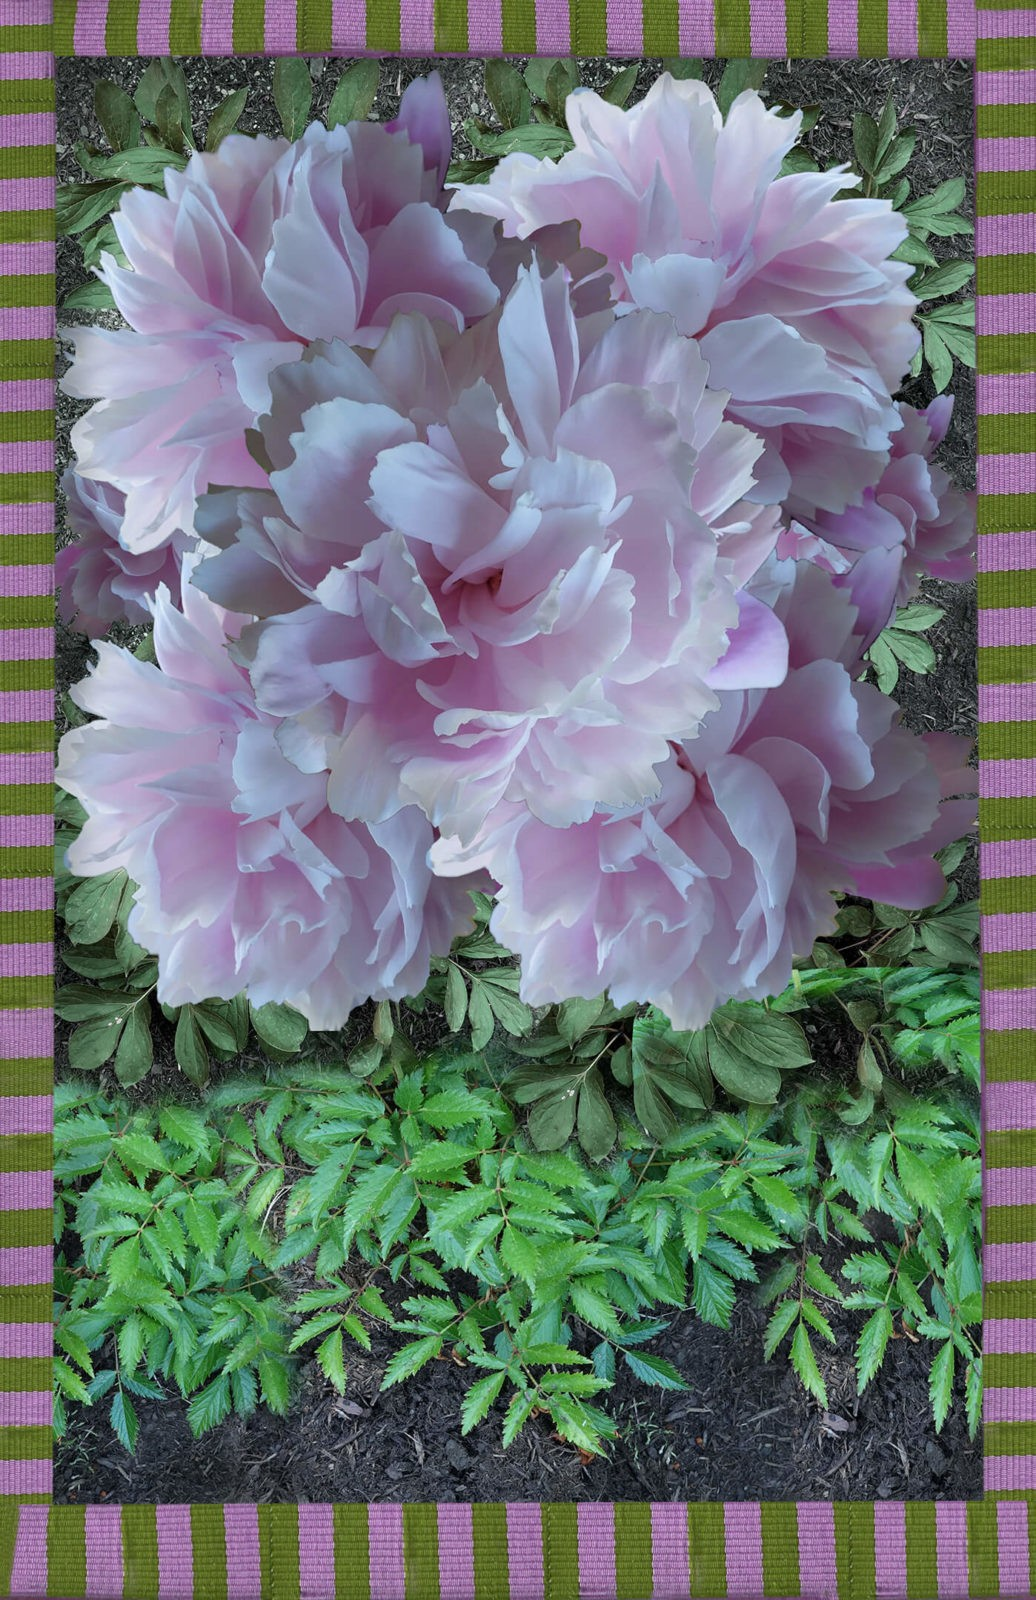 Robin Botie of Ithaca, New York, photoshops a digital montage of pink peonies after a week of craving pink.